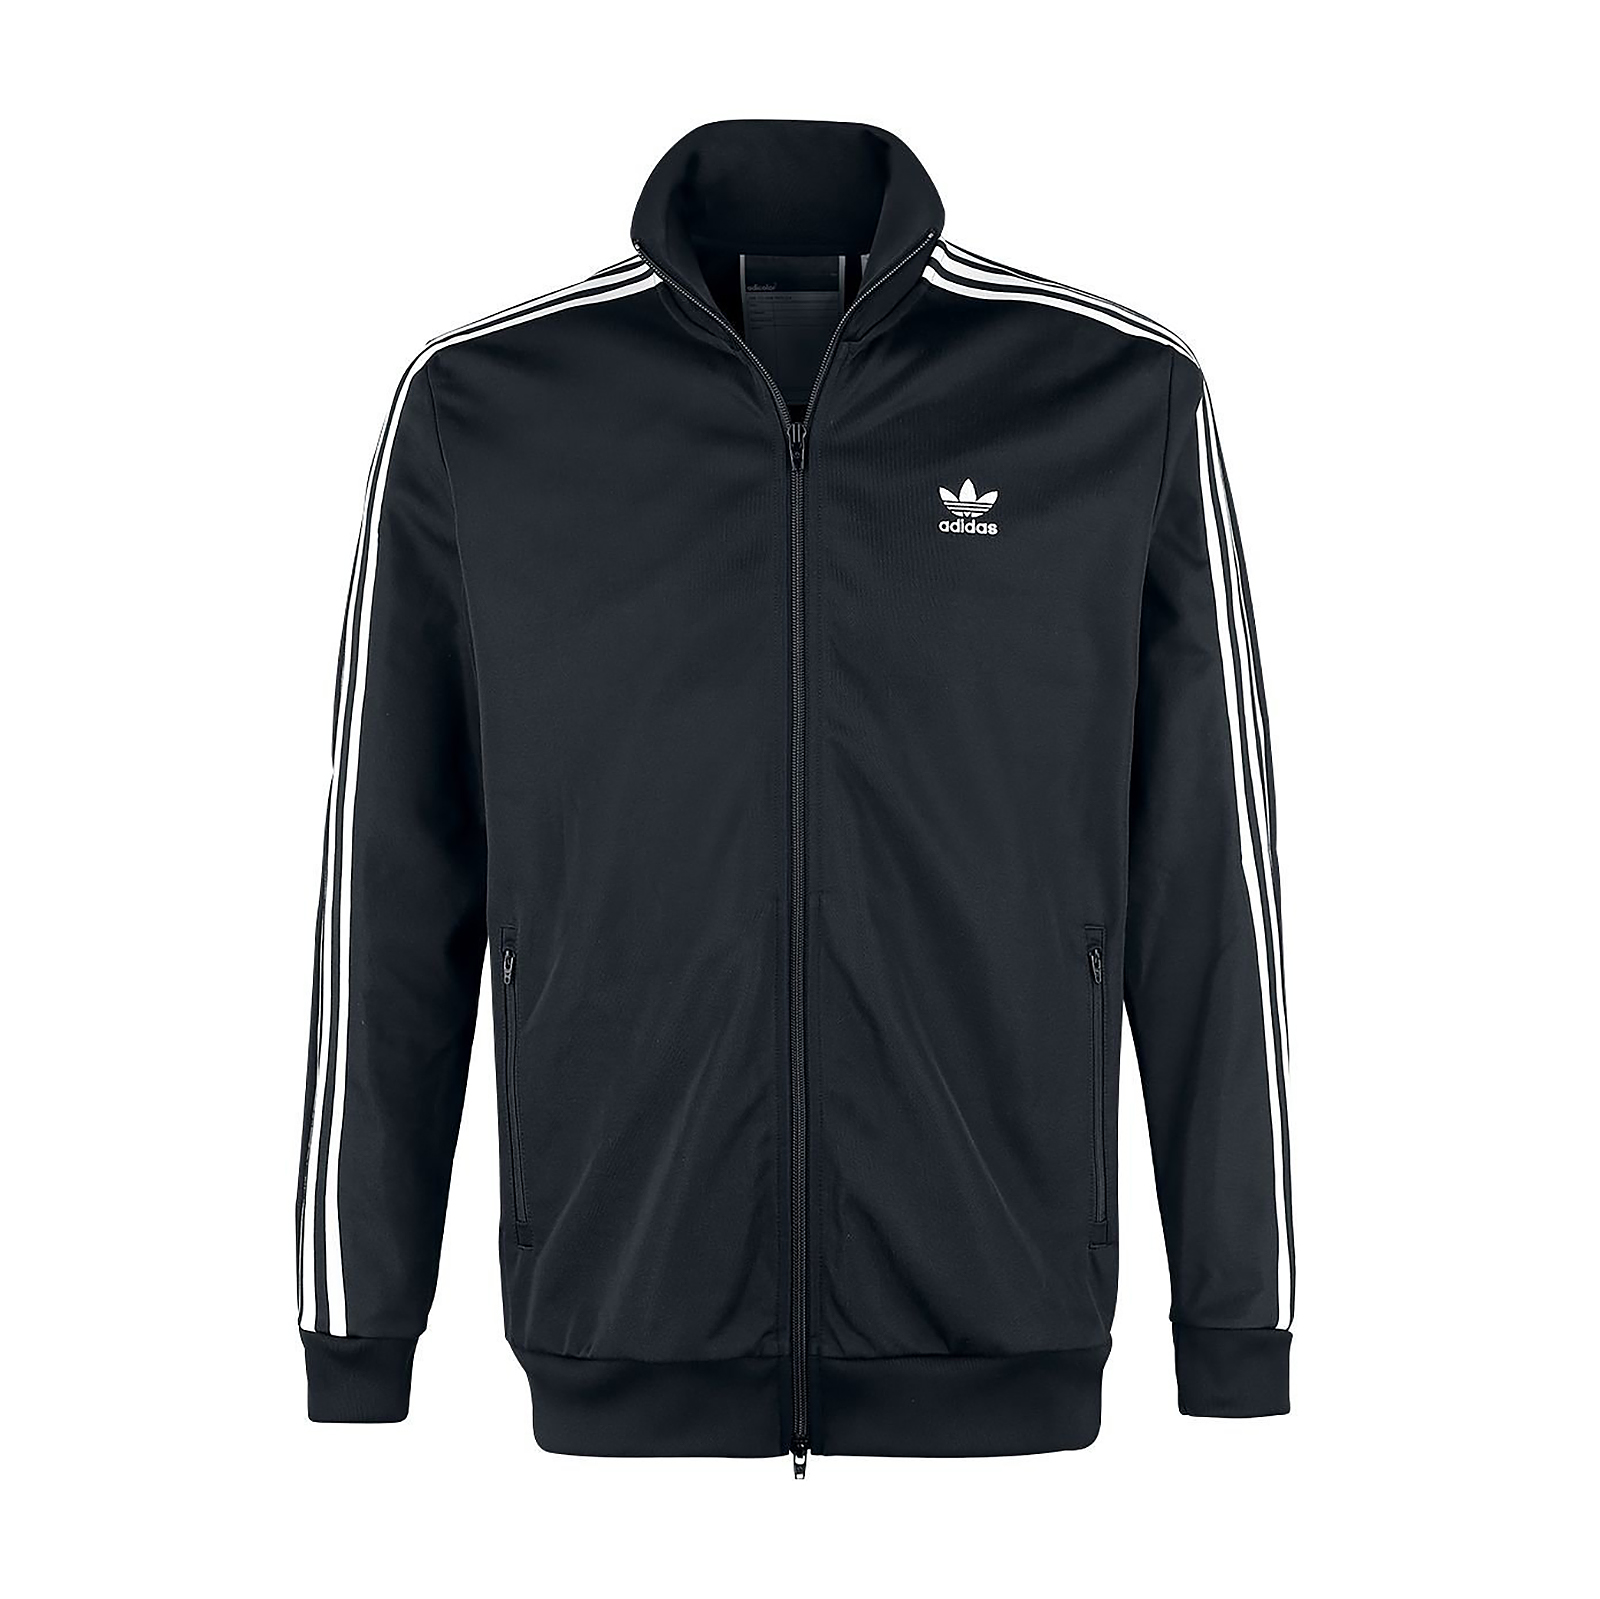 Details about 150$ Adidas BTR ARCTIC JACK MEN'S Jacket TT TRACK TOP WARM AA2586 S SMALL black